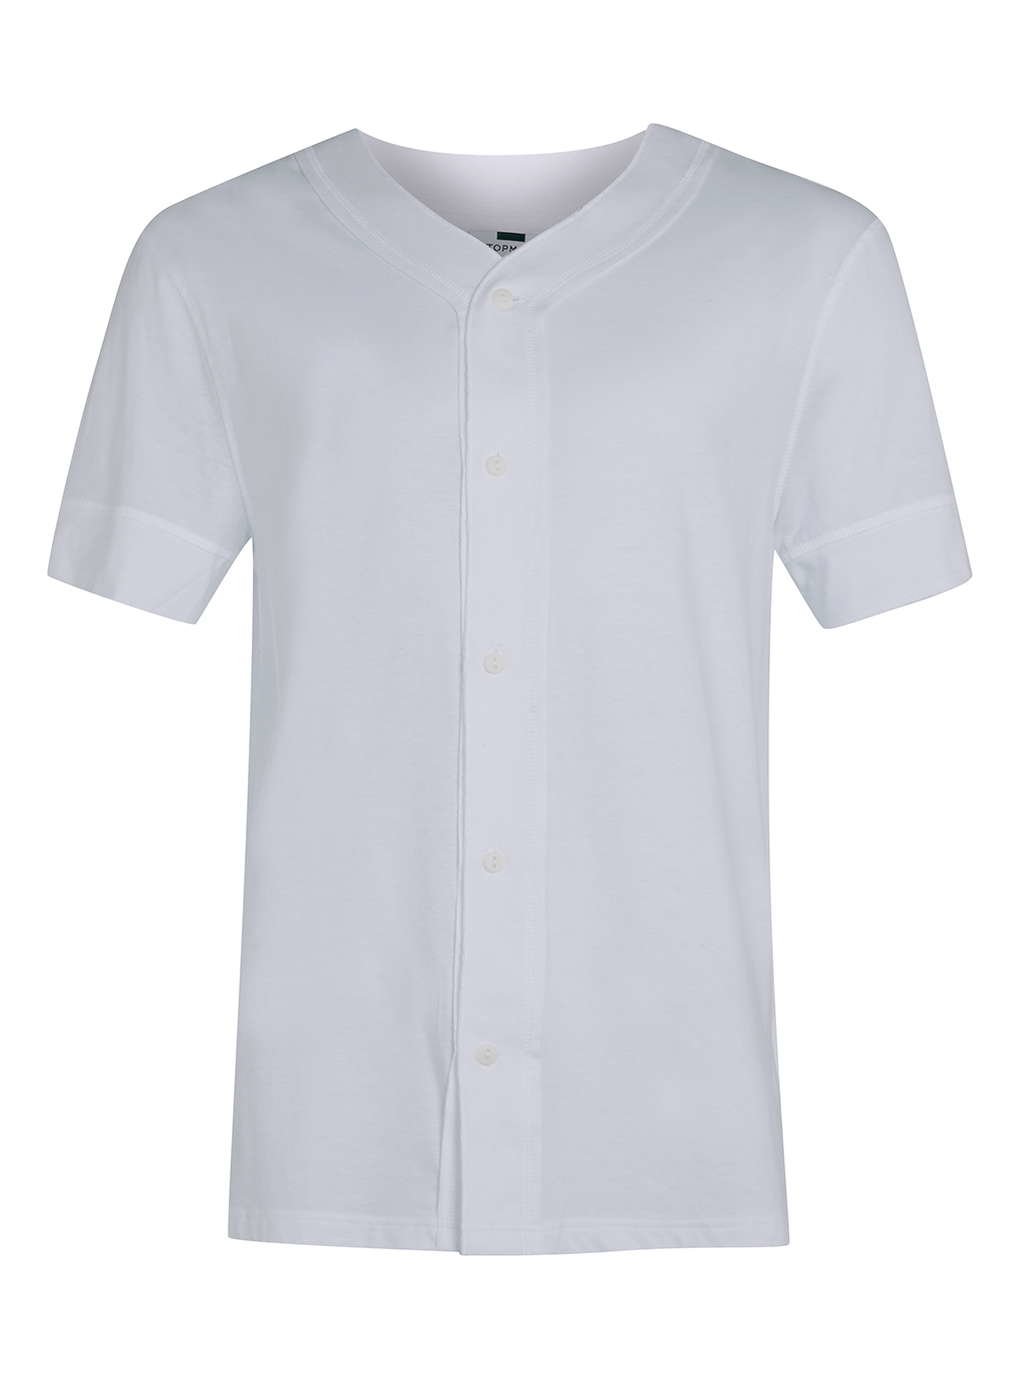 Cover your body with amazing Baseball Button t-shirts from Zazzle. Search for your new favorite shirt from thousands of great designs!